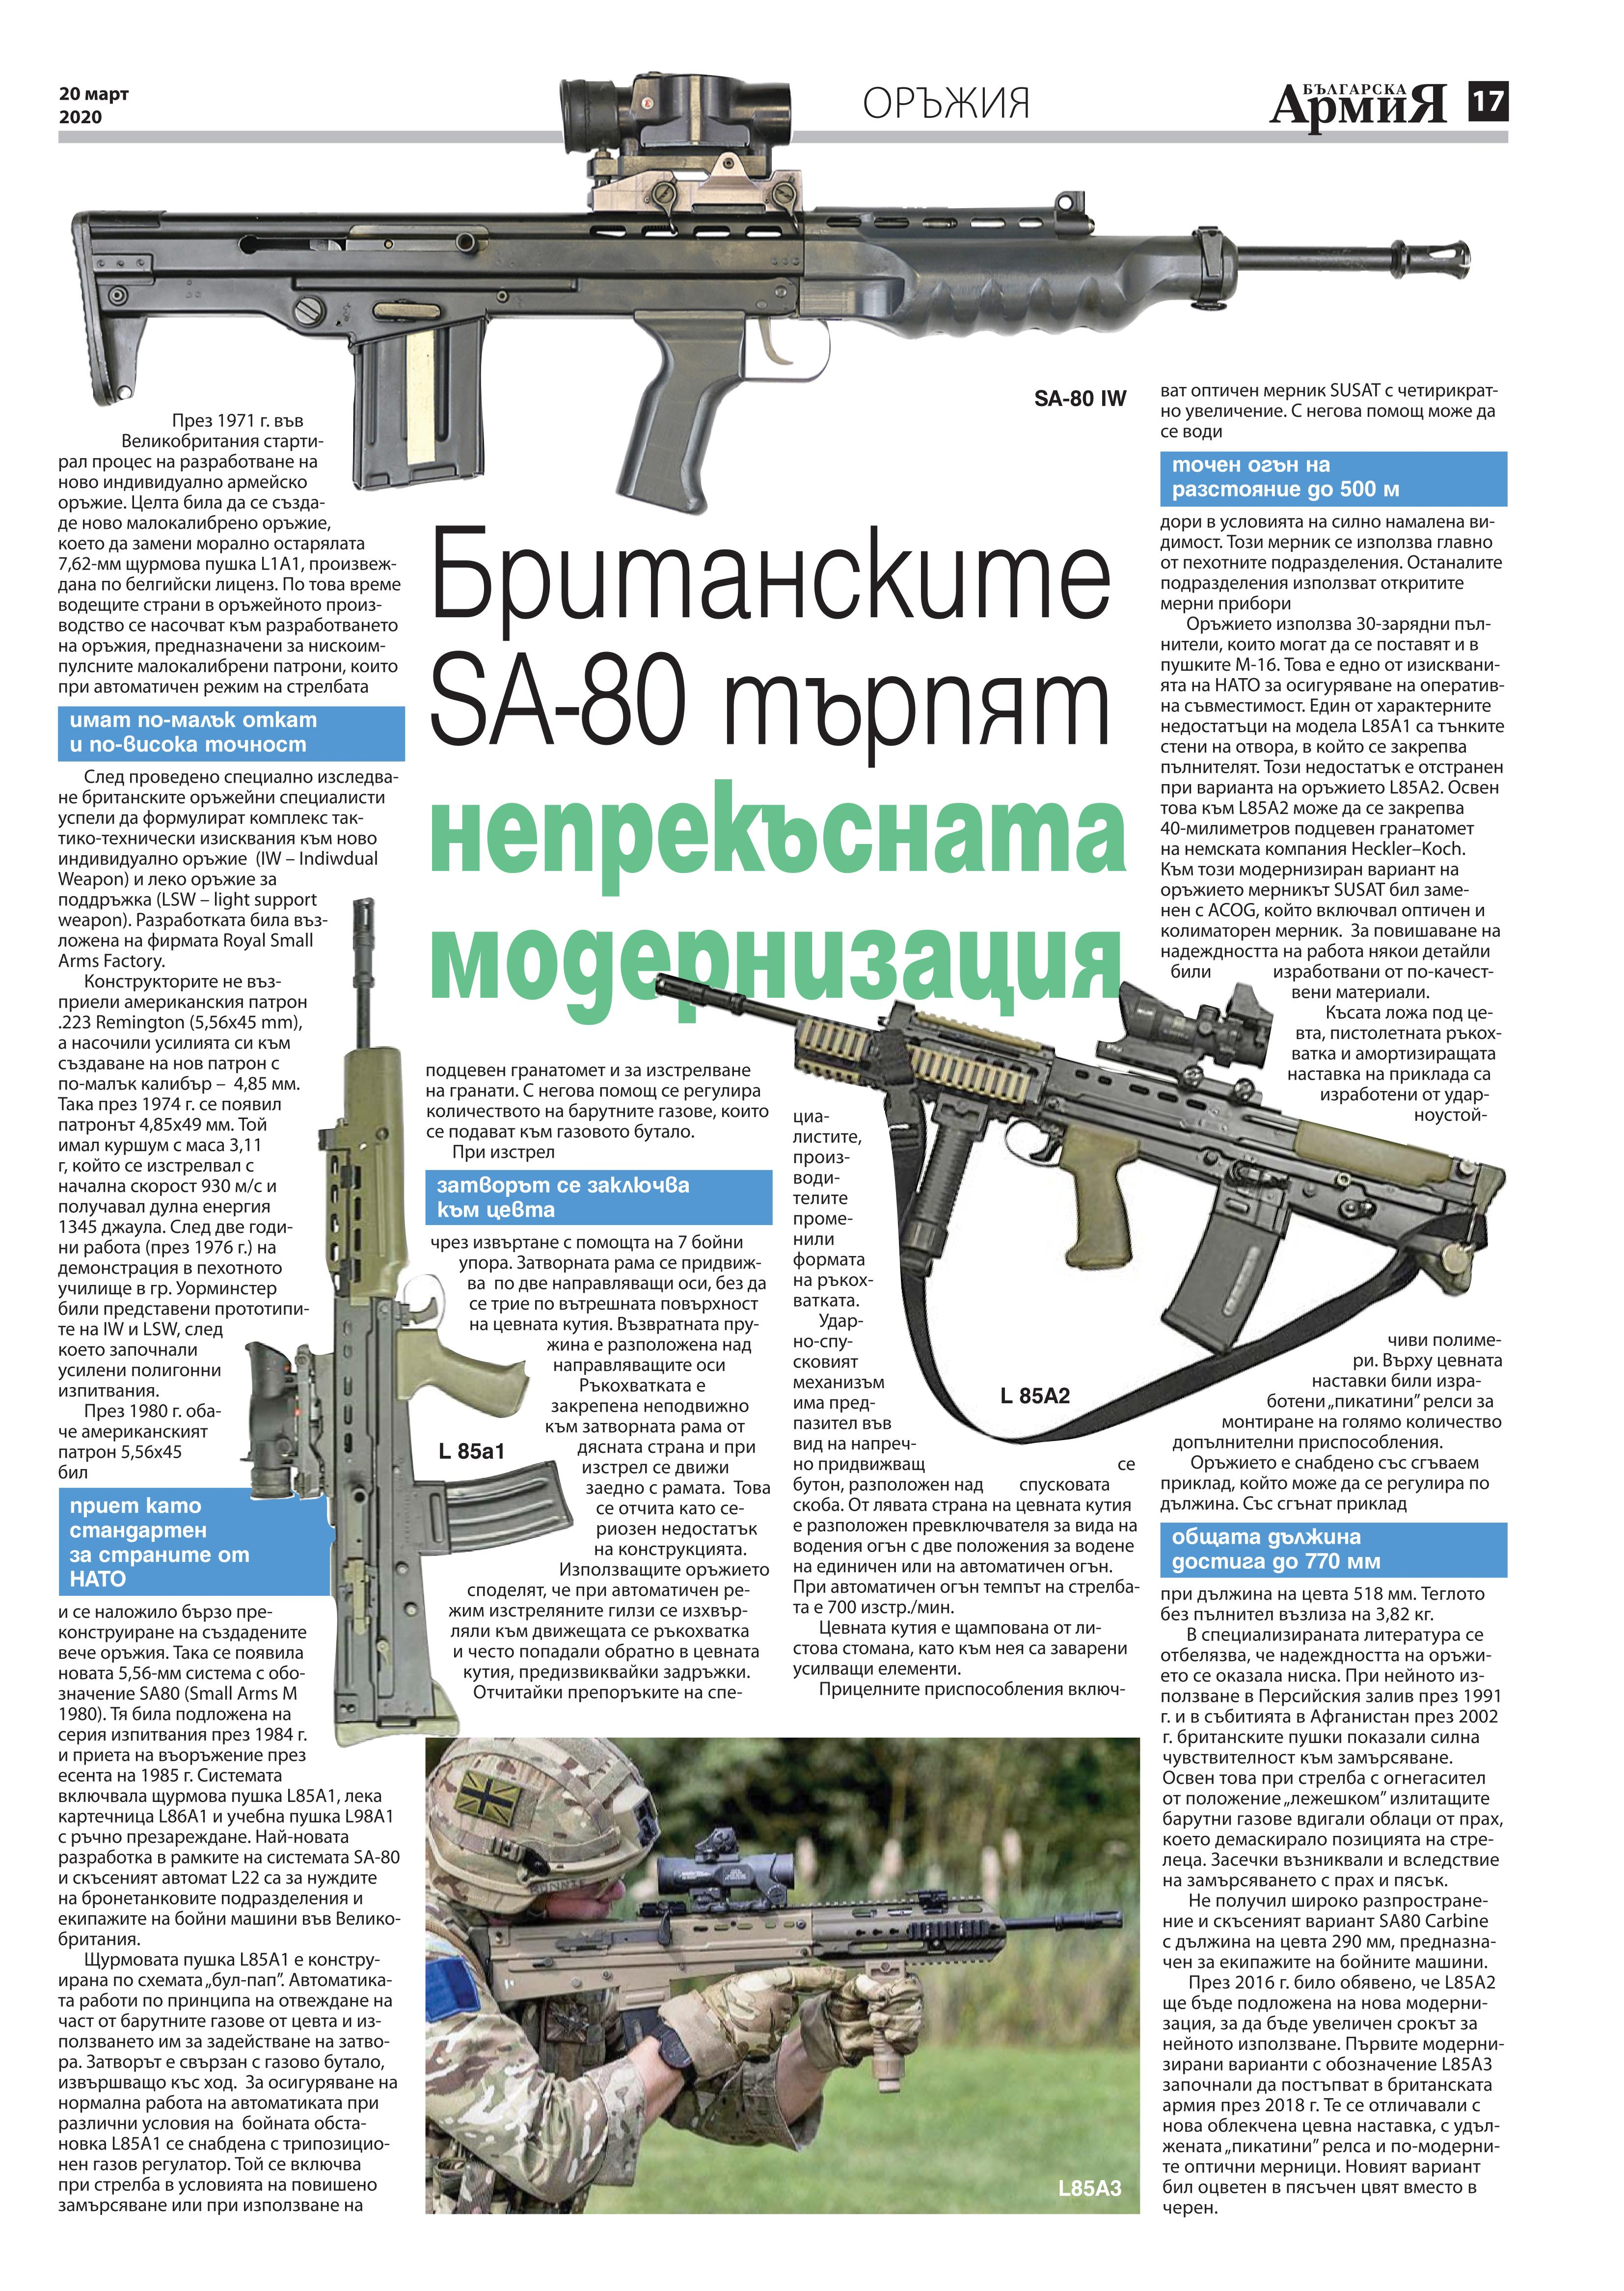 https://armymedia.bg/wp-content/uploads/2015/06/17.page1_-131.jpg